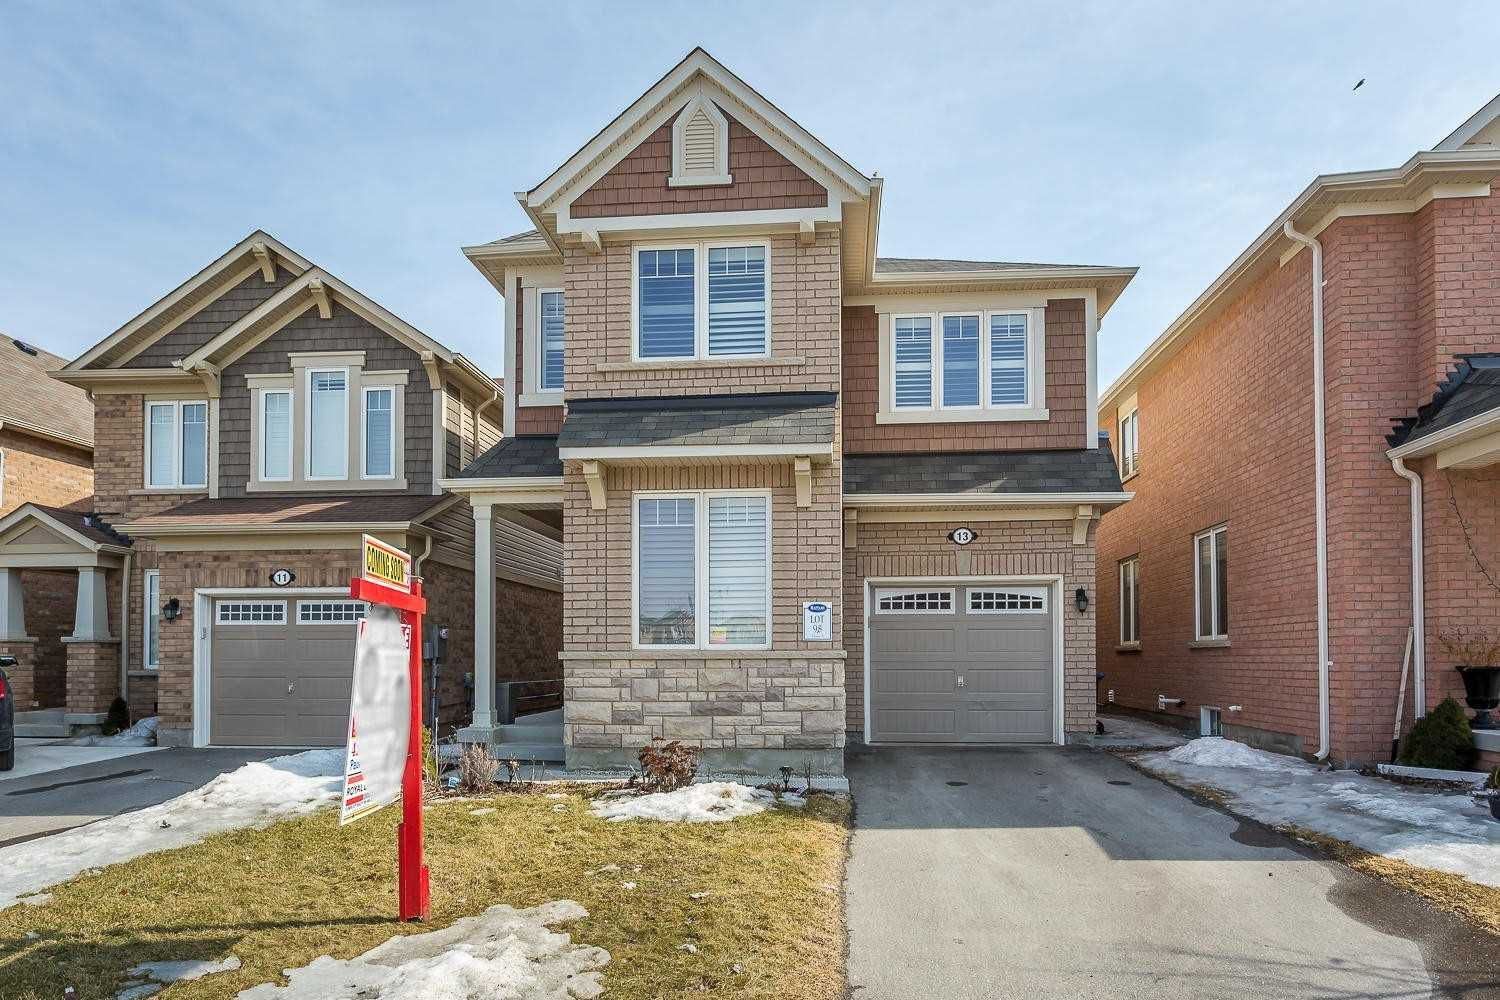 Main Photo: 13 Killick Road in Brampton: Northwest Brampton House (2-Storey) for sale : MLS®# W4390031